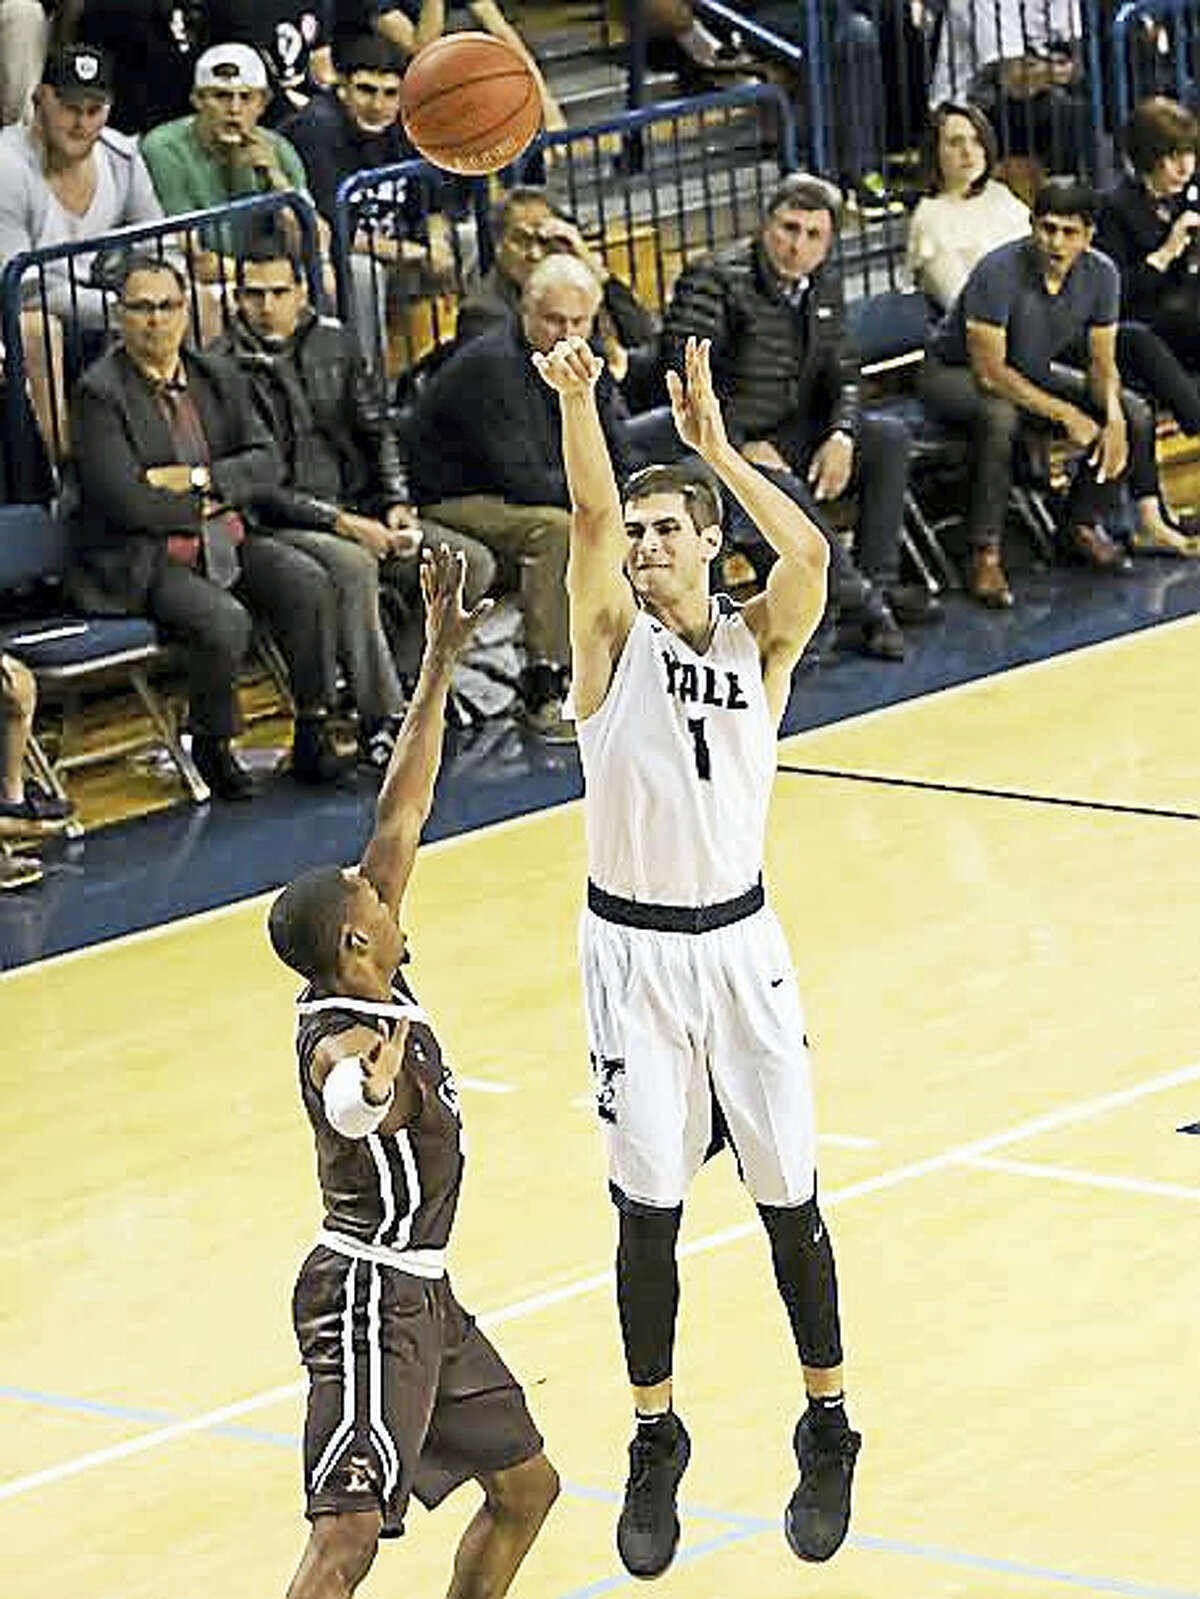 With Makai Mason out for the season, senior captain Anthony Dallier has taken over point guard duties for Yale.